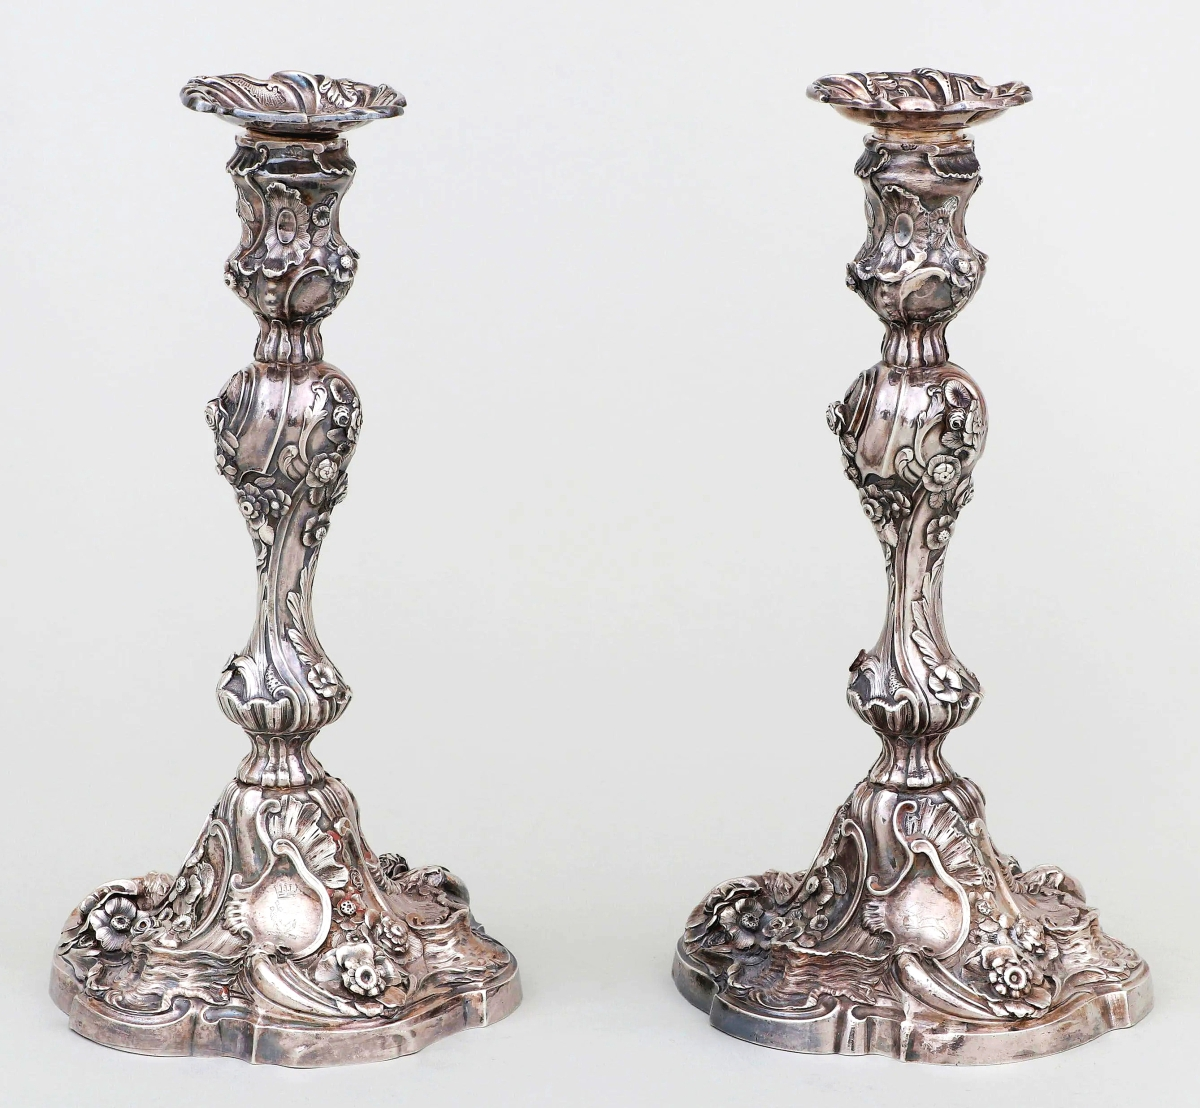 The sale's top form for any international maker came with this pair of candlesticks by Dublin silversmith Robert Calderwood. With impressive decoration, the duo went out at $30,000. Williams noted a matched pair at the National Museum of Ireland. These were once in the collection of Mae Cadwell Manwaring Plant Hayward (1877-1956), wife of banker-industrialist John E. Rovensky.